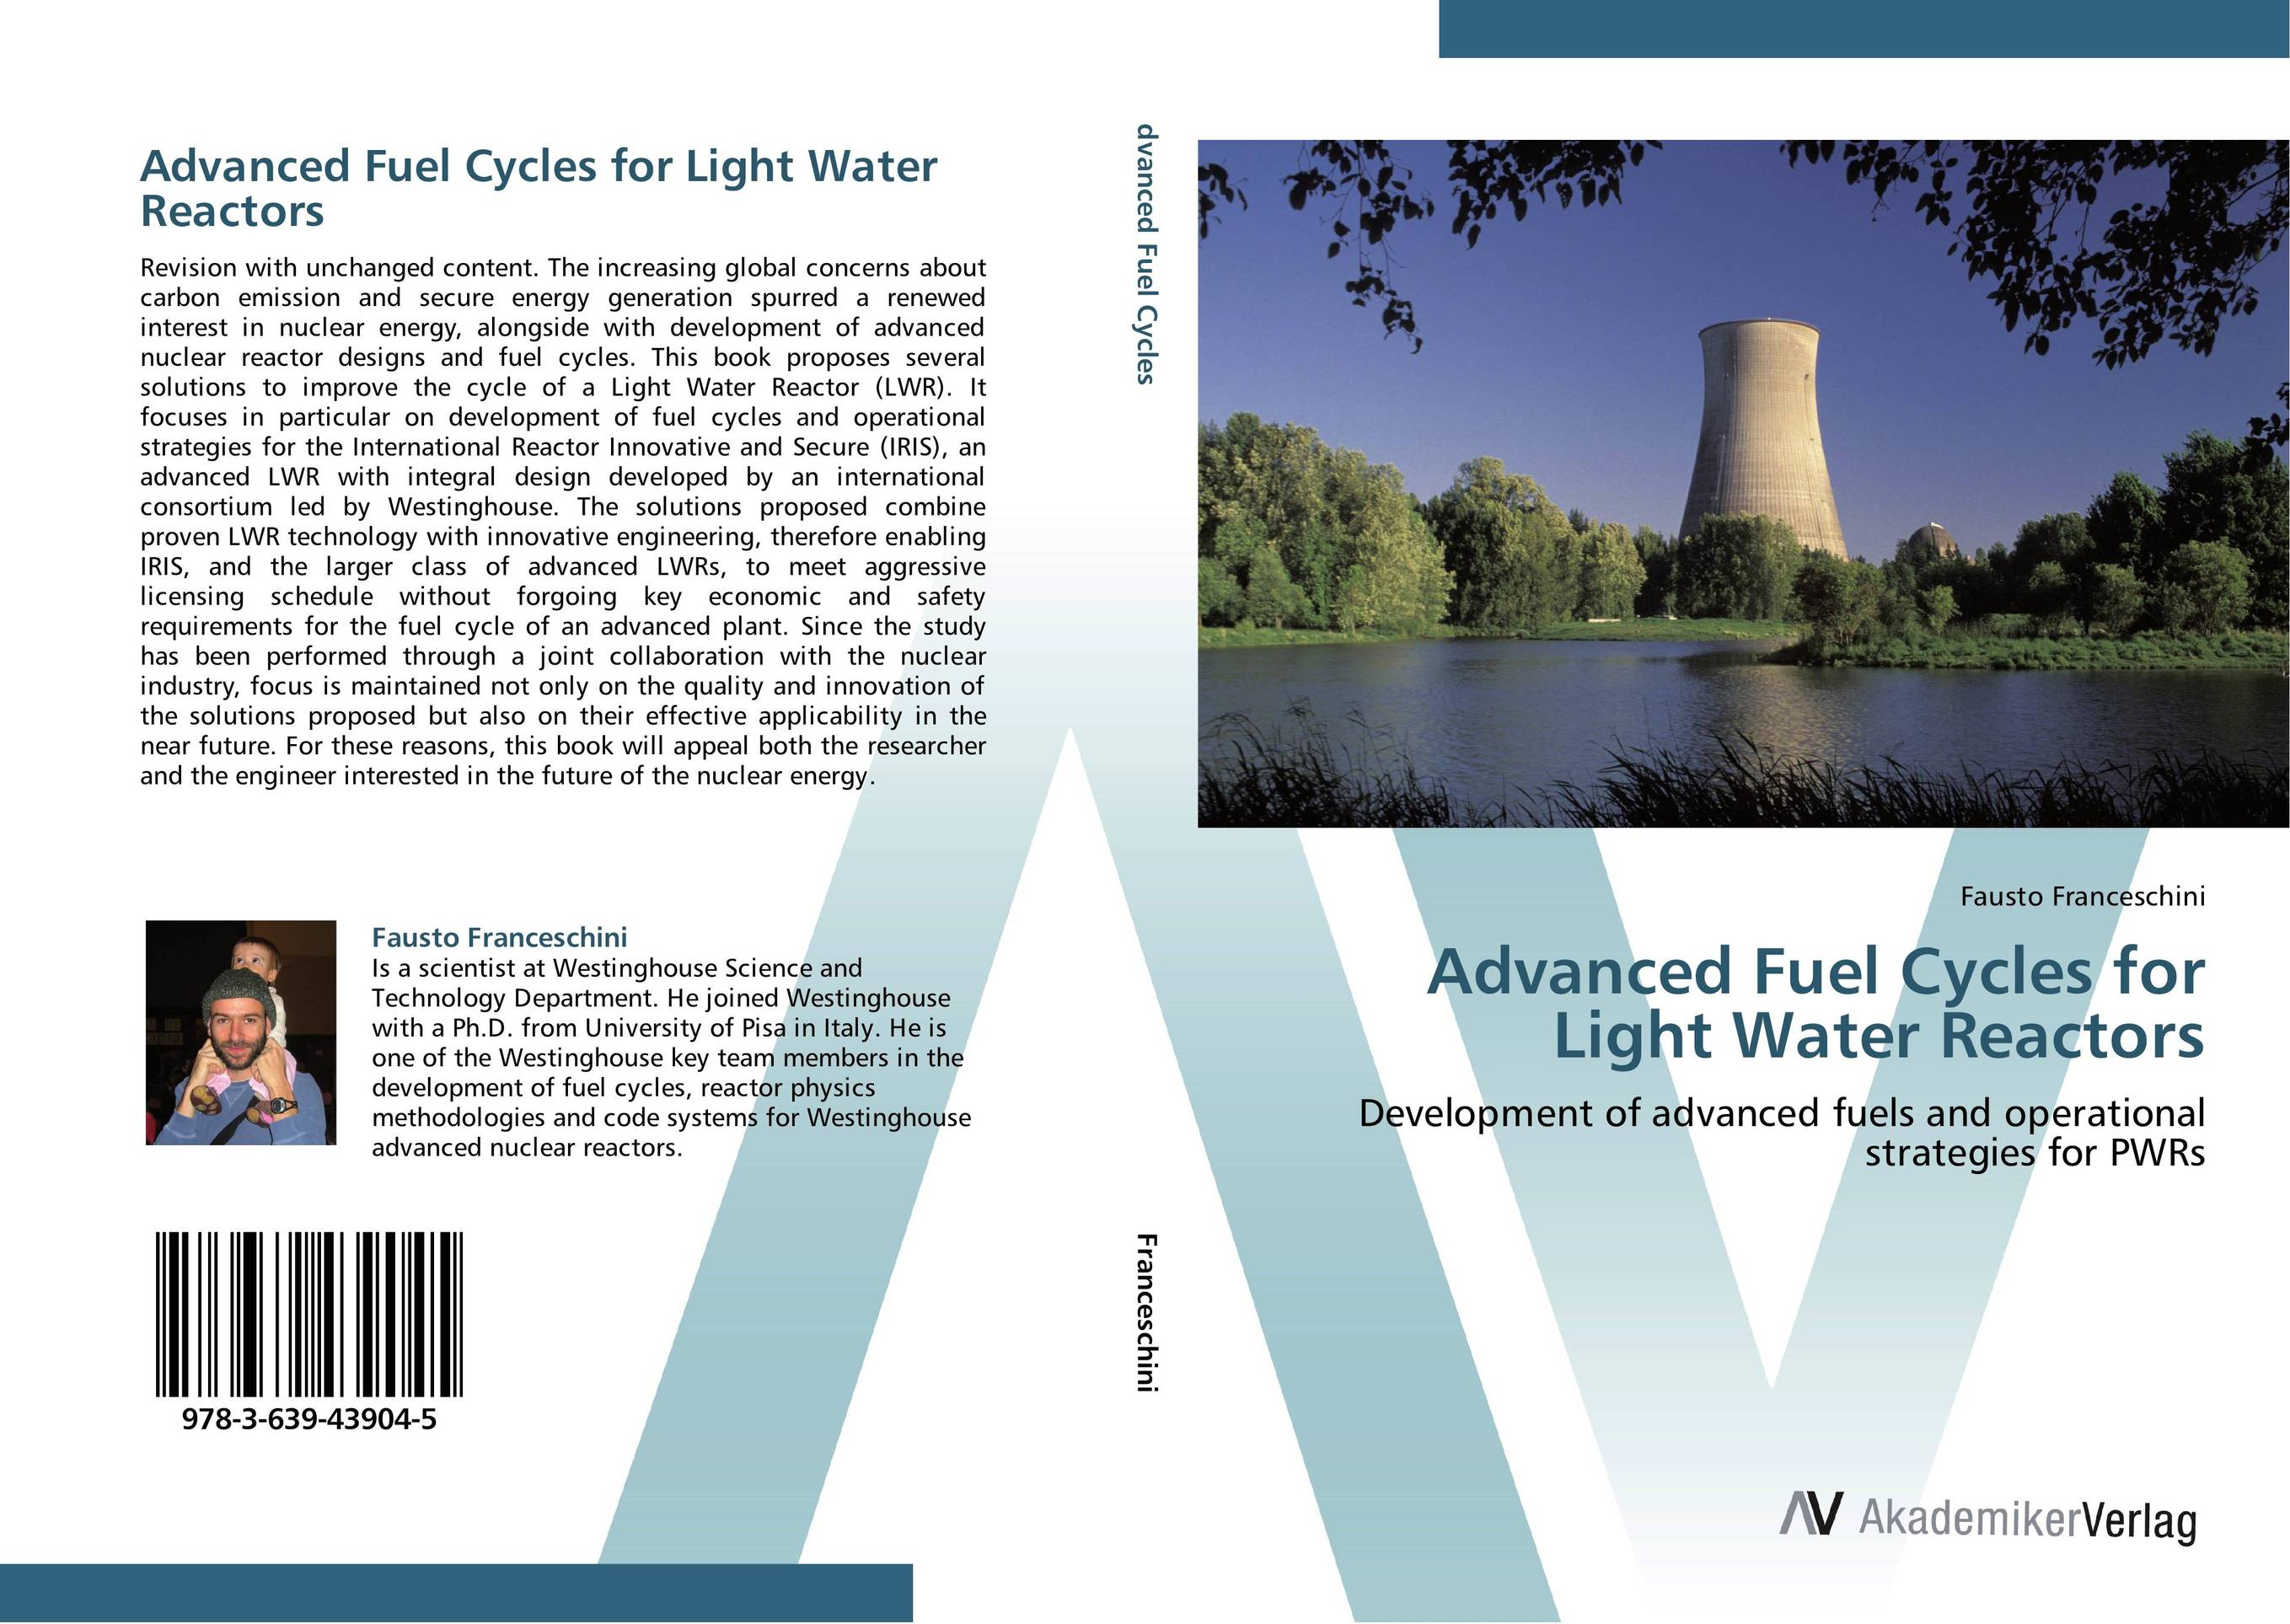 Advanced Fuel Cycles for Light Water Reactors kondratieff waves cycles crises and forecasts